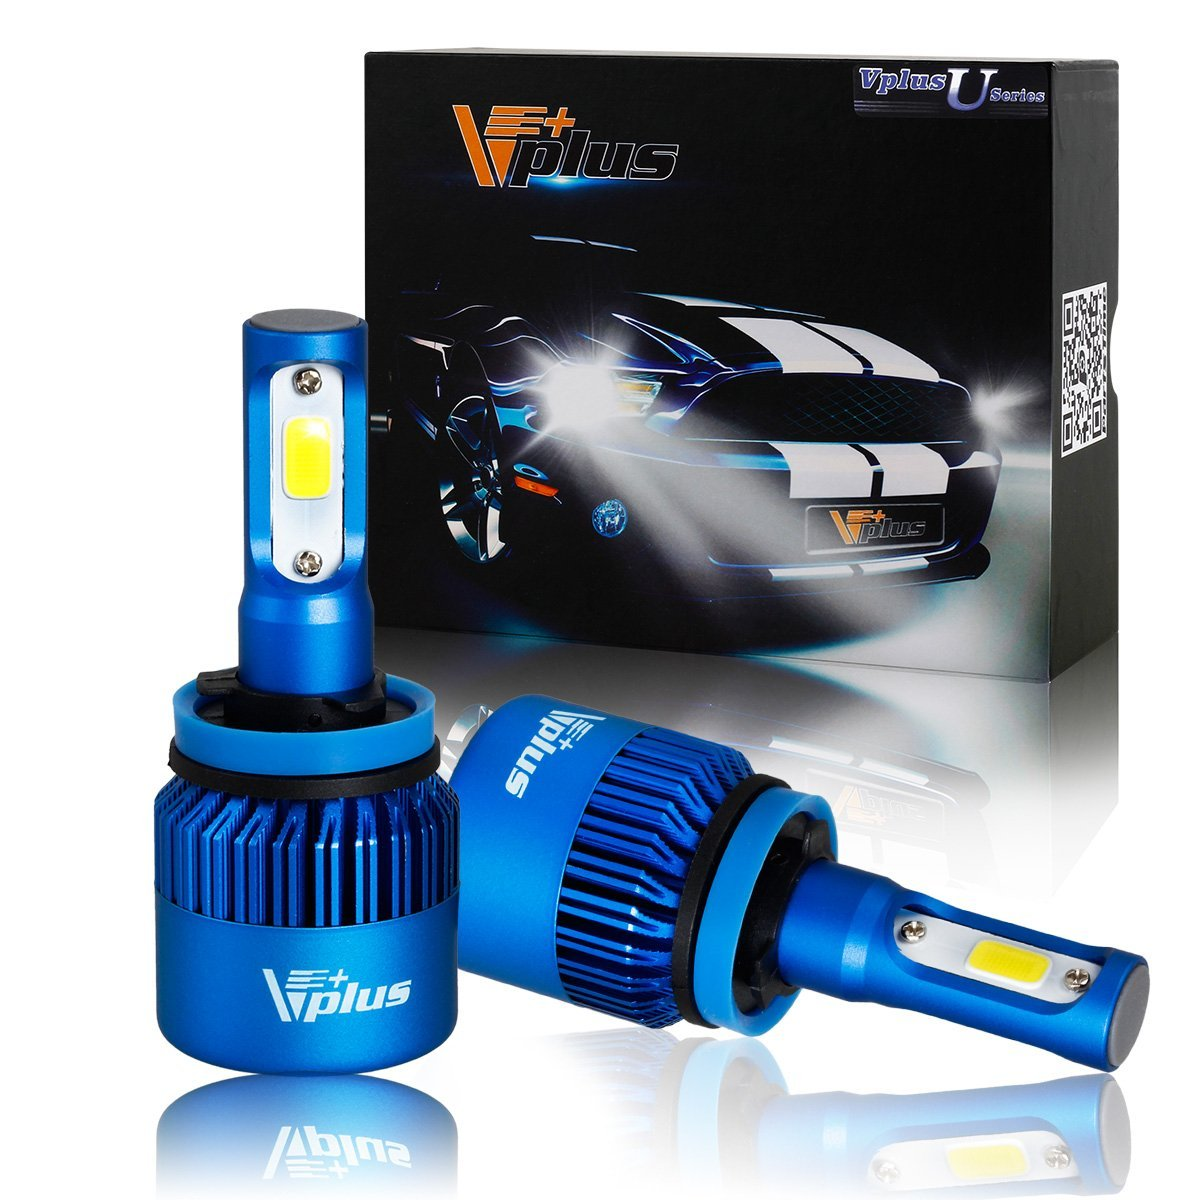 Vplus U Series LED Headlight Bulbs w/ Clear Focused Beam Kit - H8 H11 H9 80W 8,000LM 6500K White COB w/ Fan LED Headlamp Conversion Replace HID & Halogen -(2pcs/set)